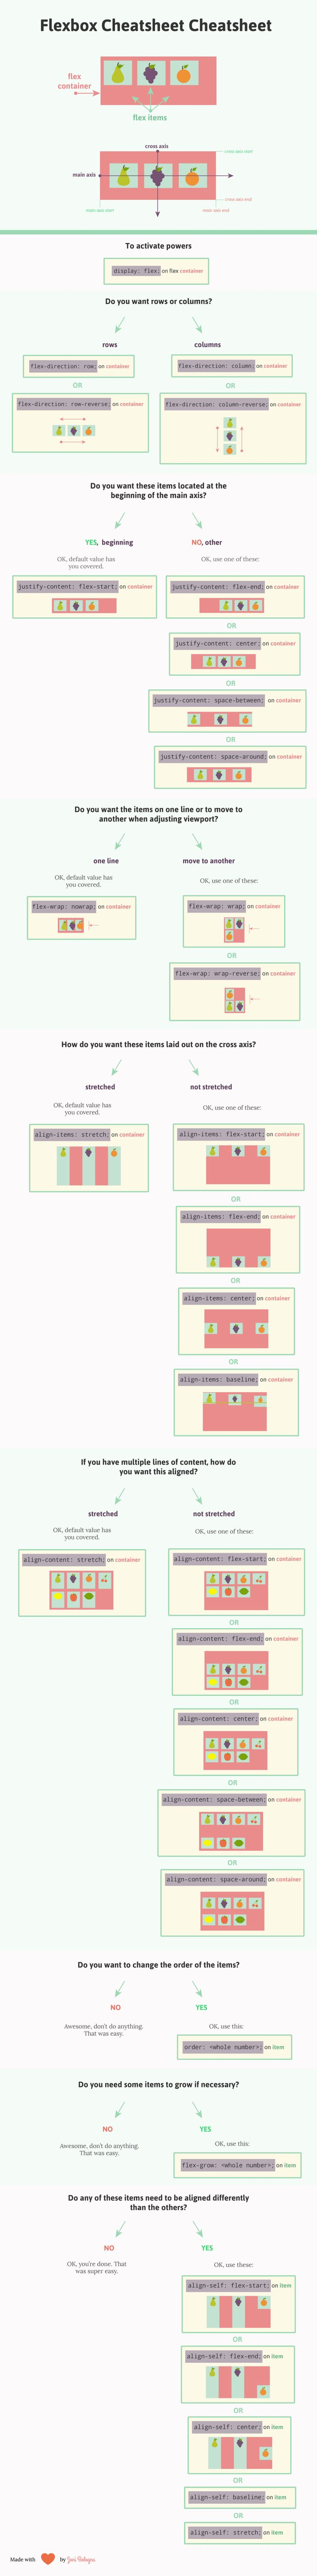 Capture - flexbox sheet – guide illustré des propriétés